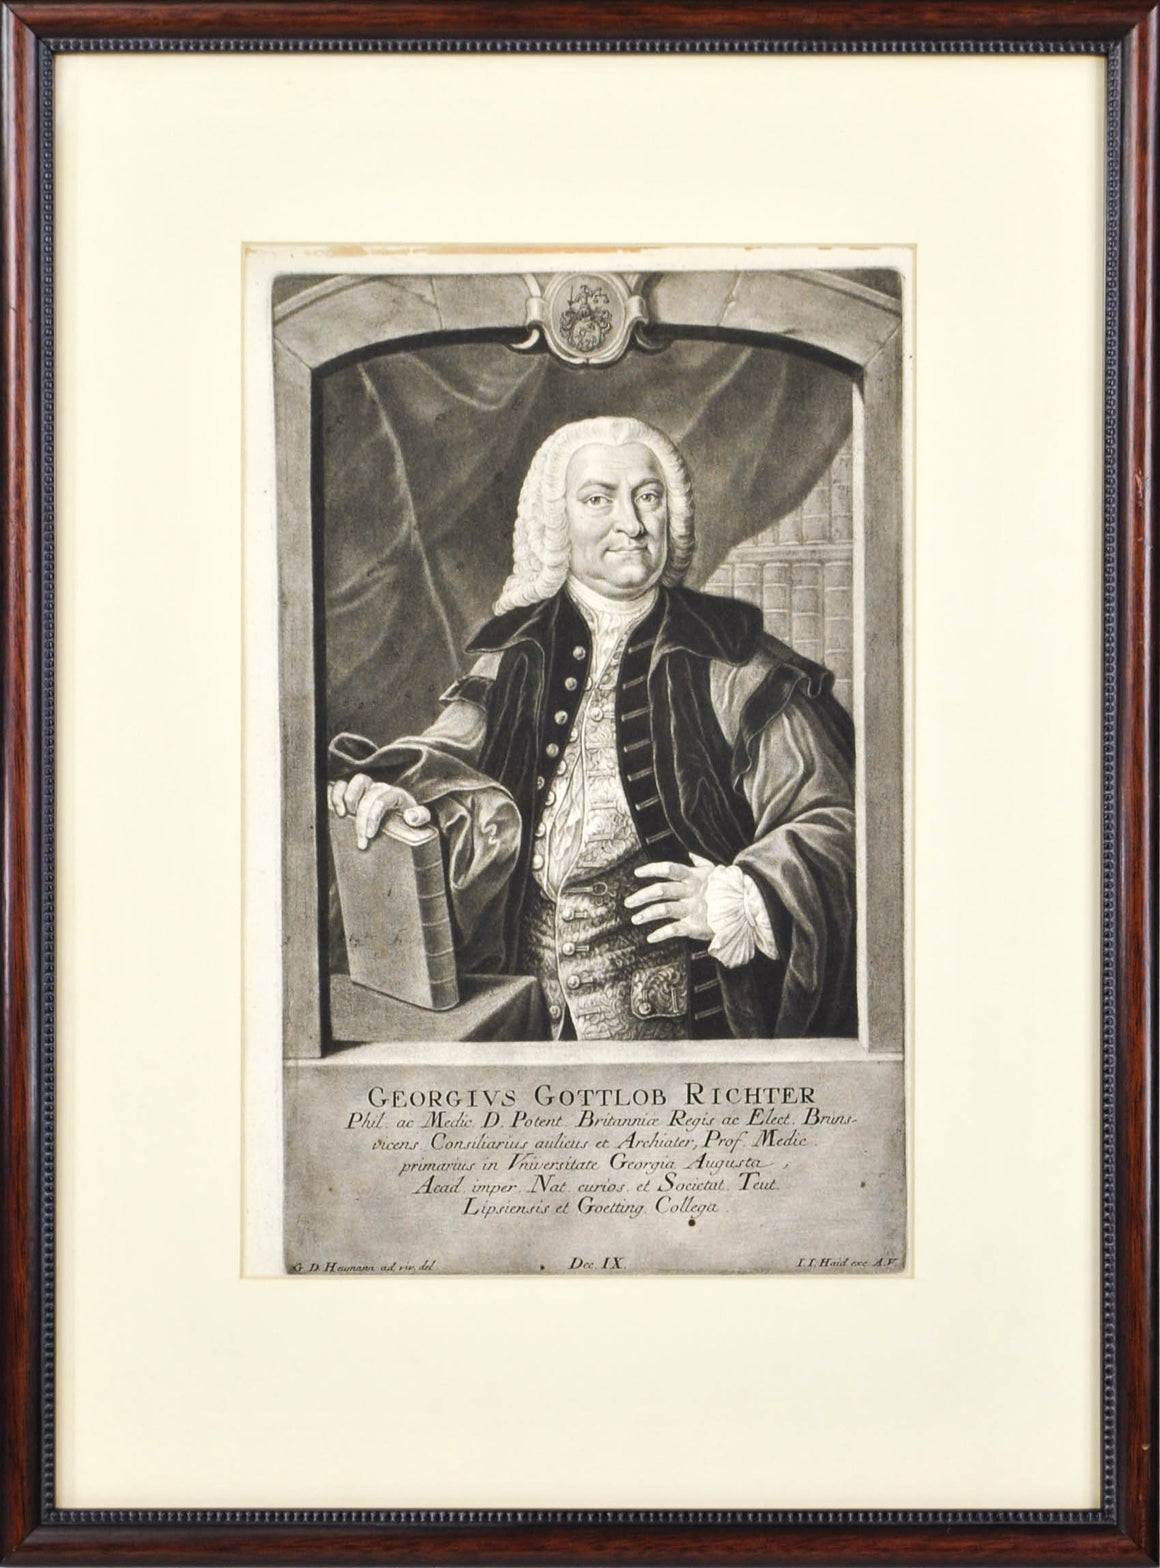 Georgius Gottlob Richter (1694-1773) Antique Medical Doctor Print